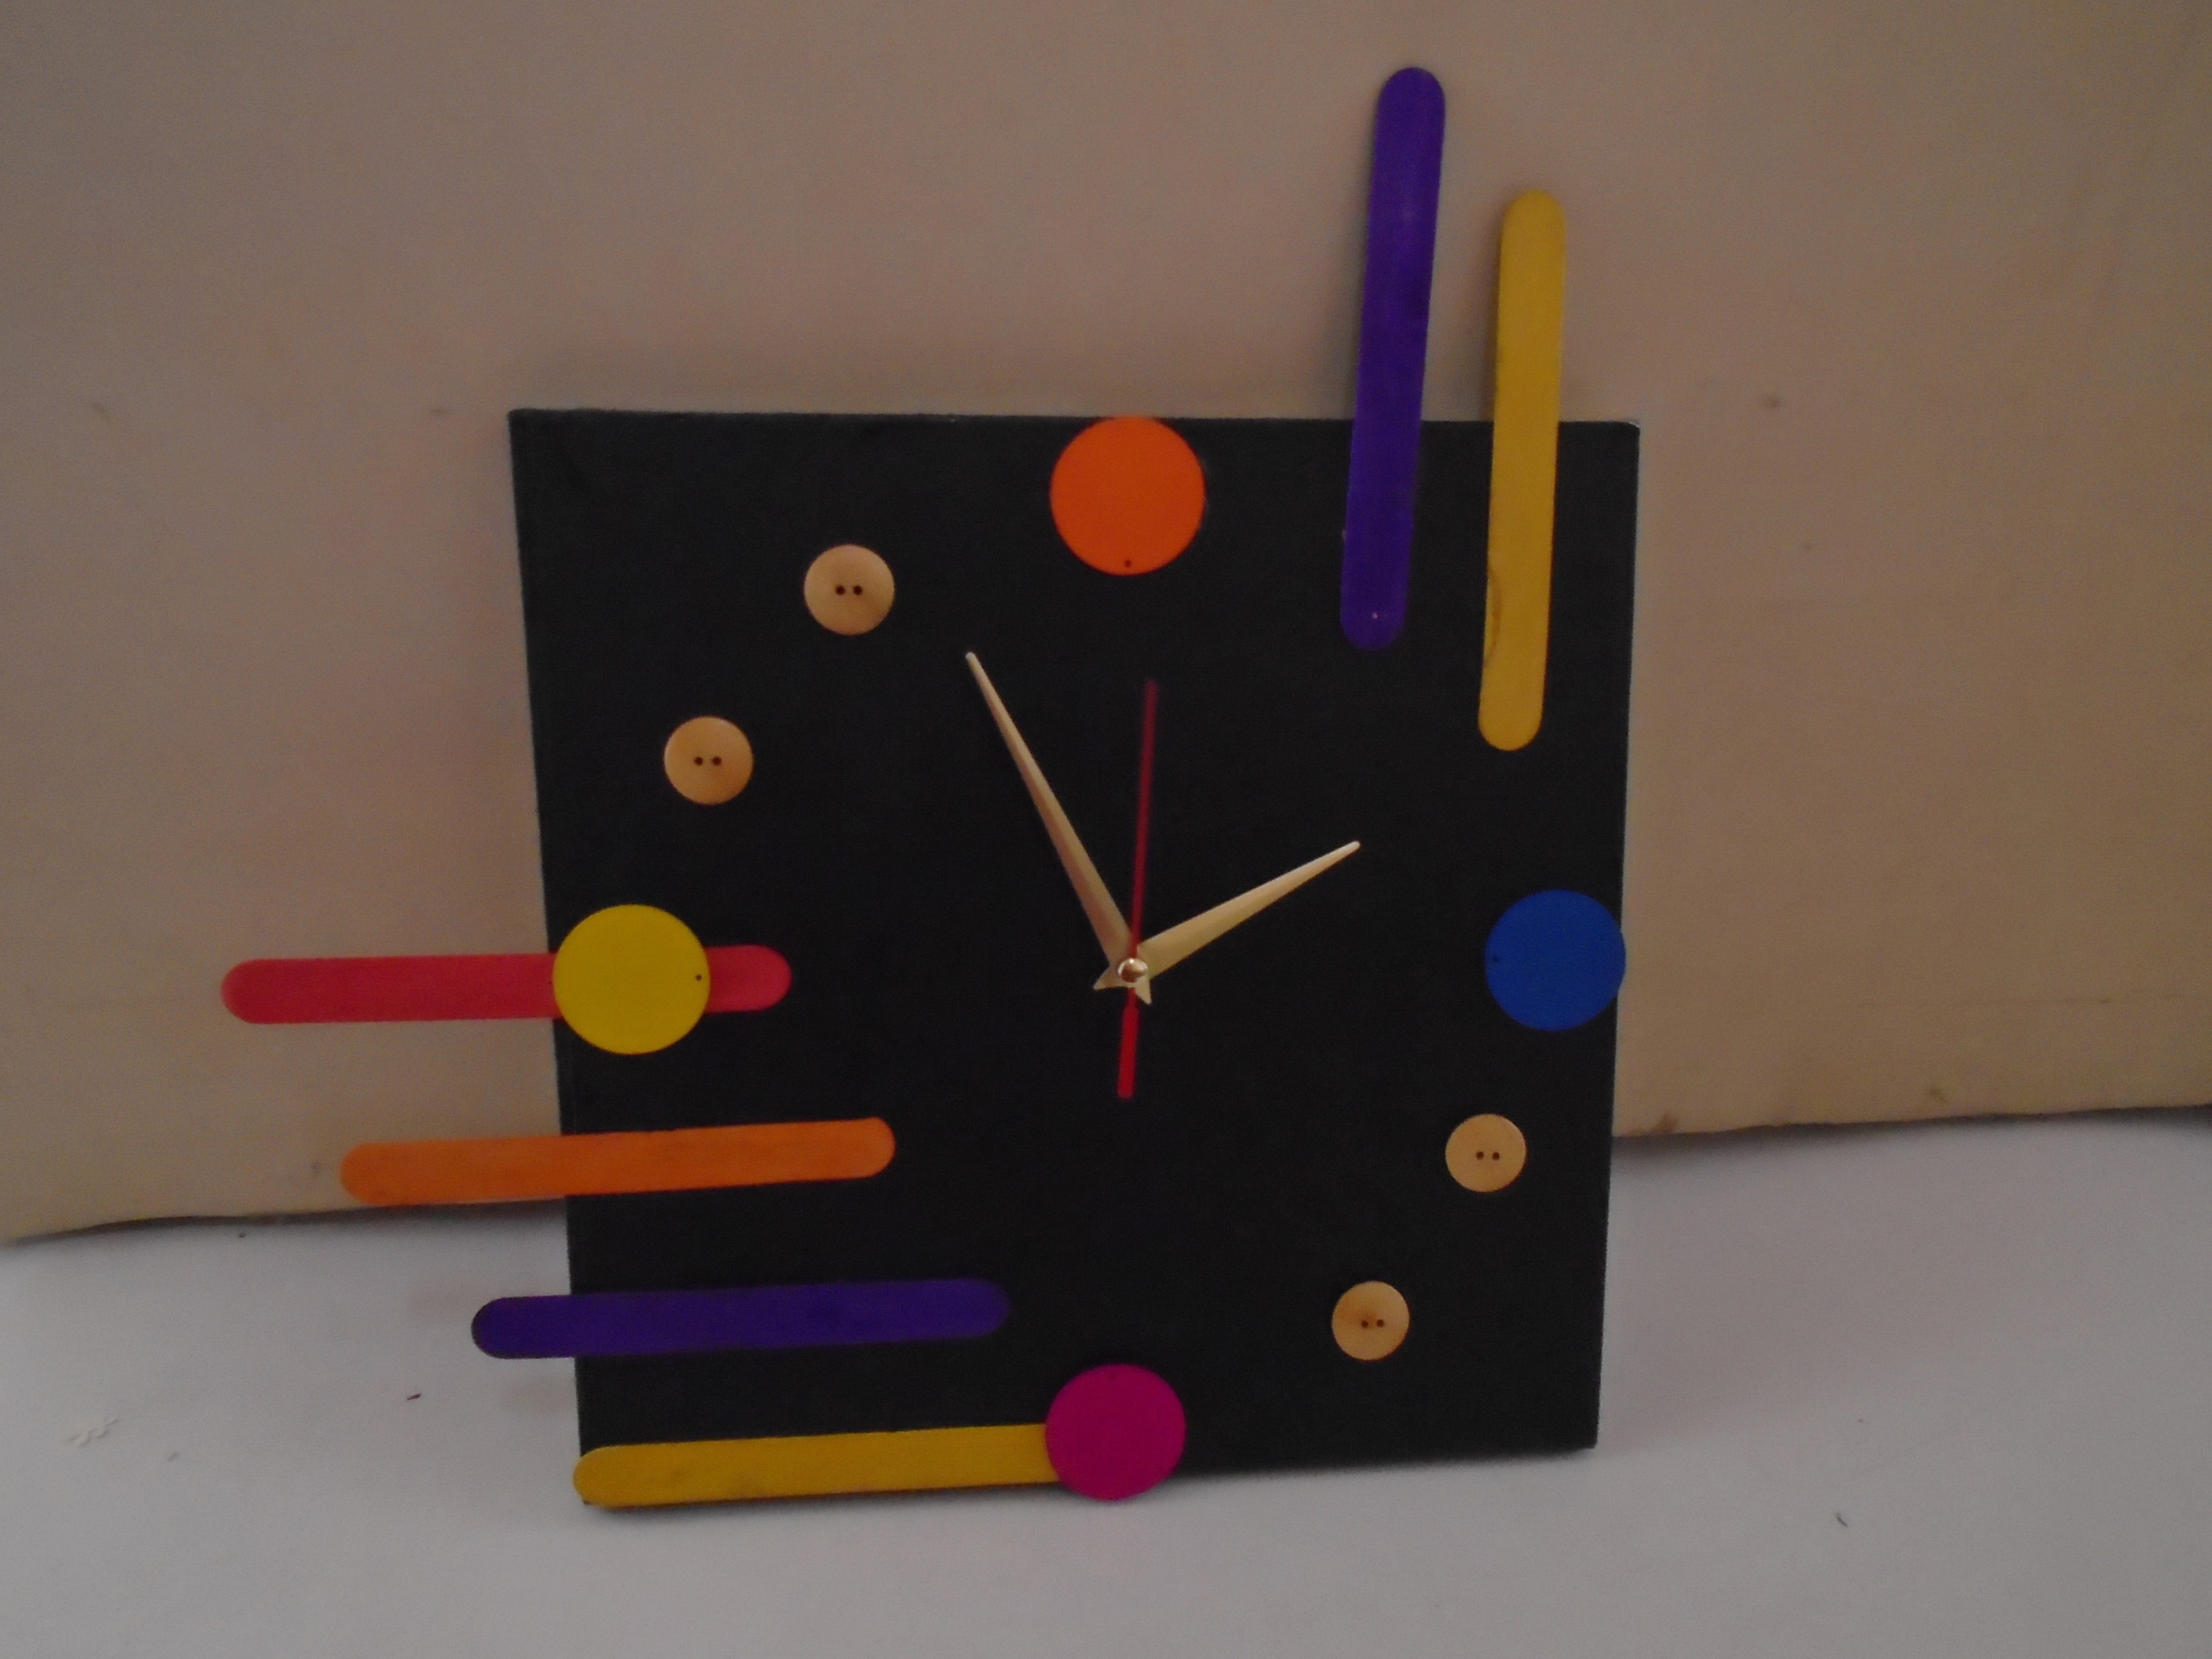 Abstract Wall Clock 183 A Clock 183 Home Diy On Cut Out